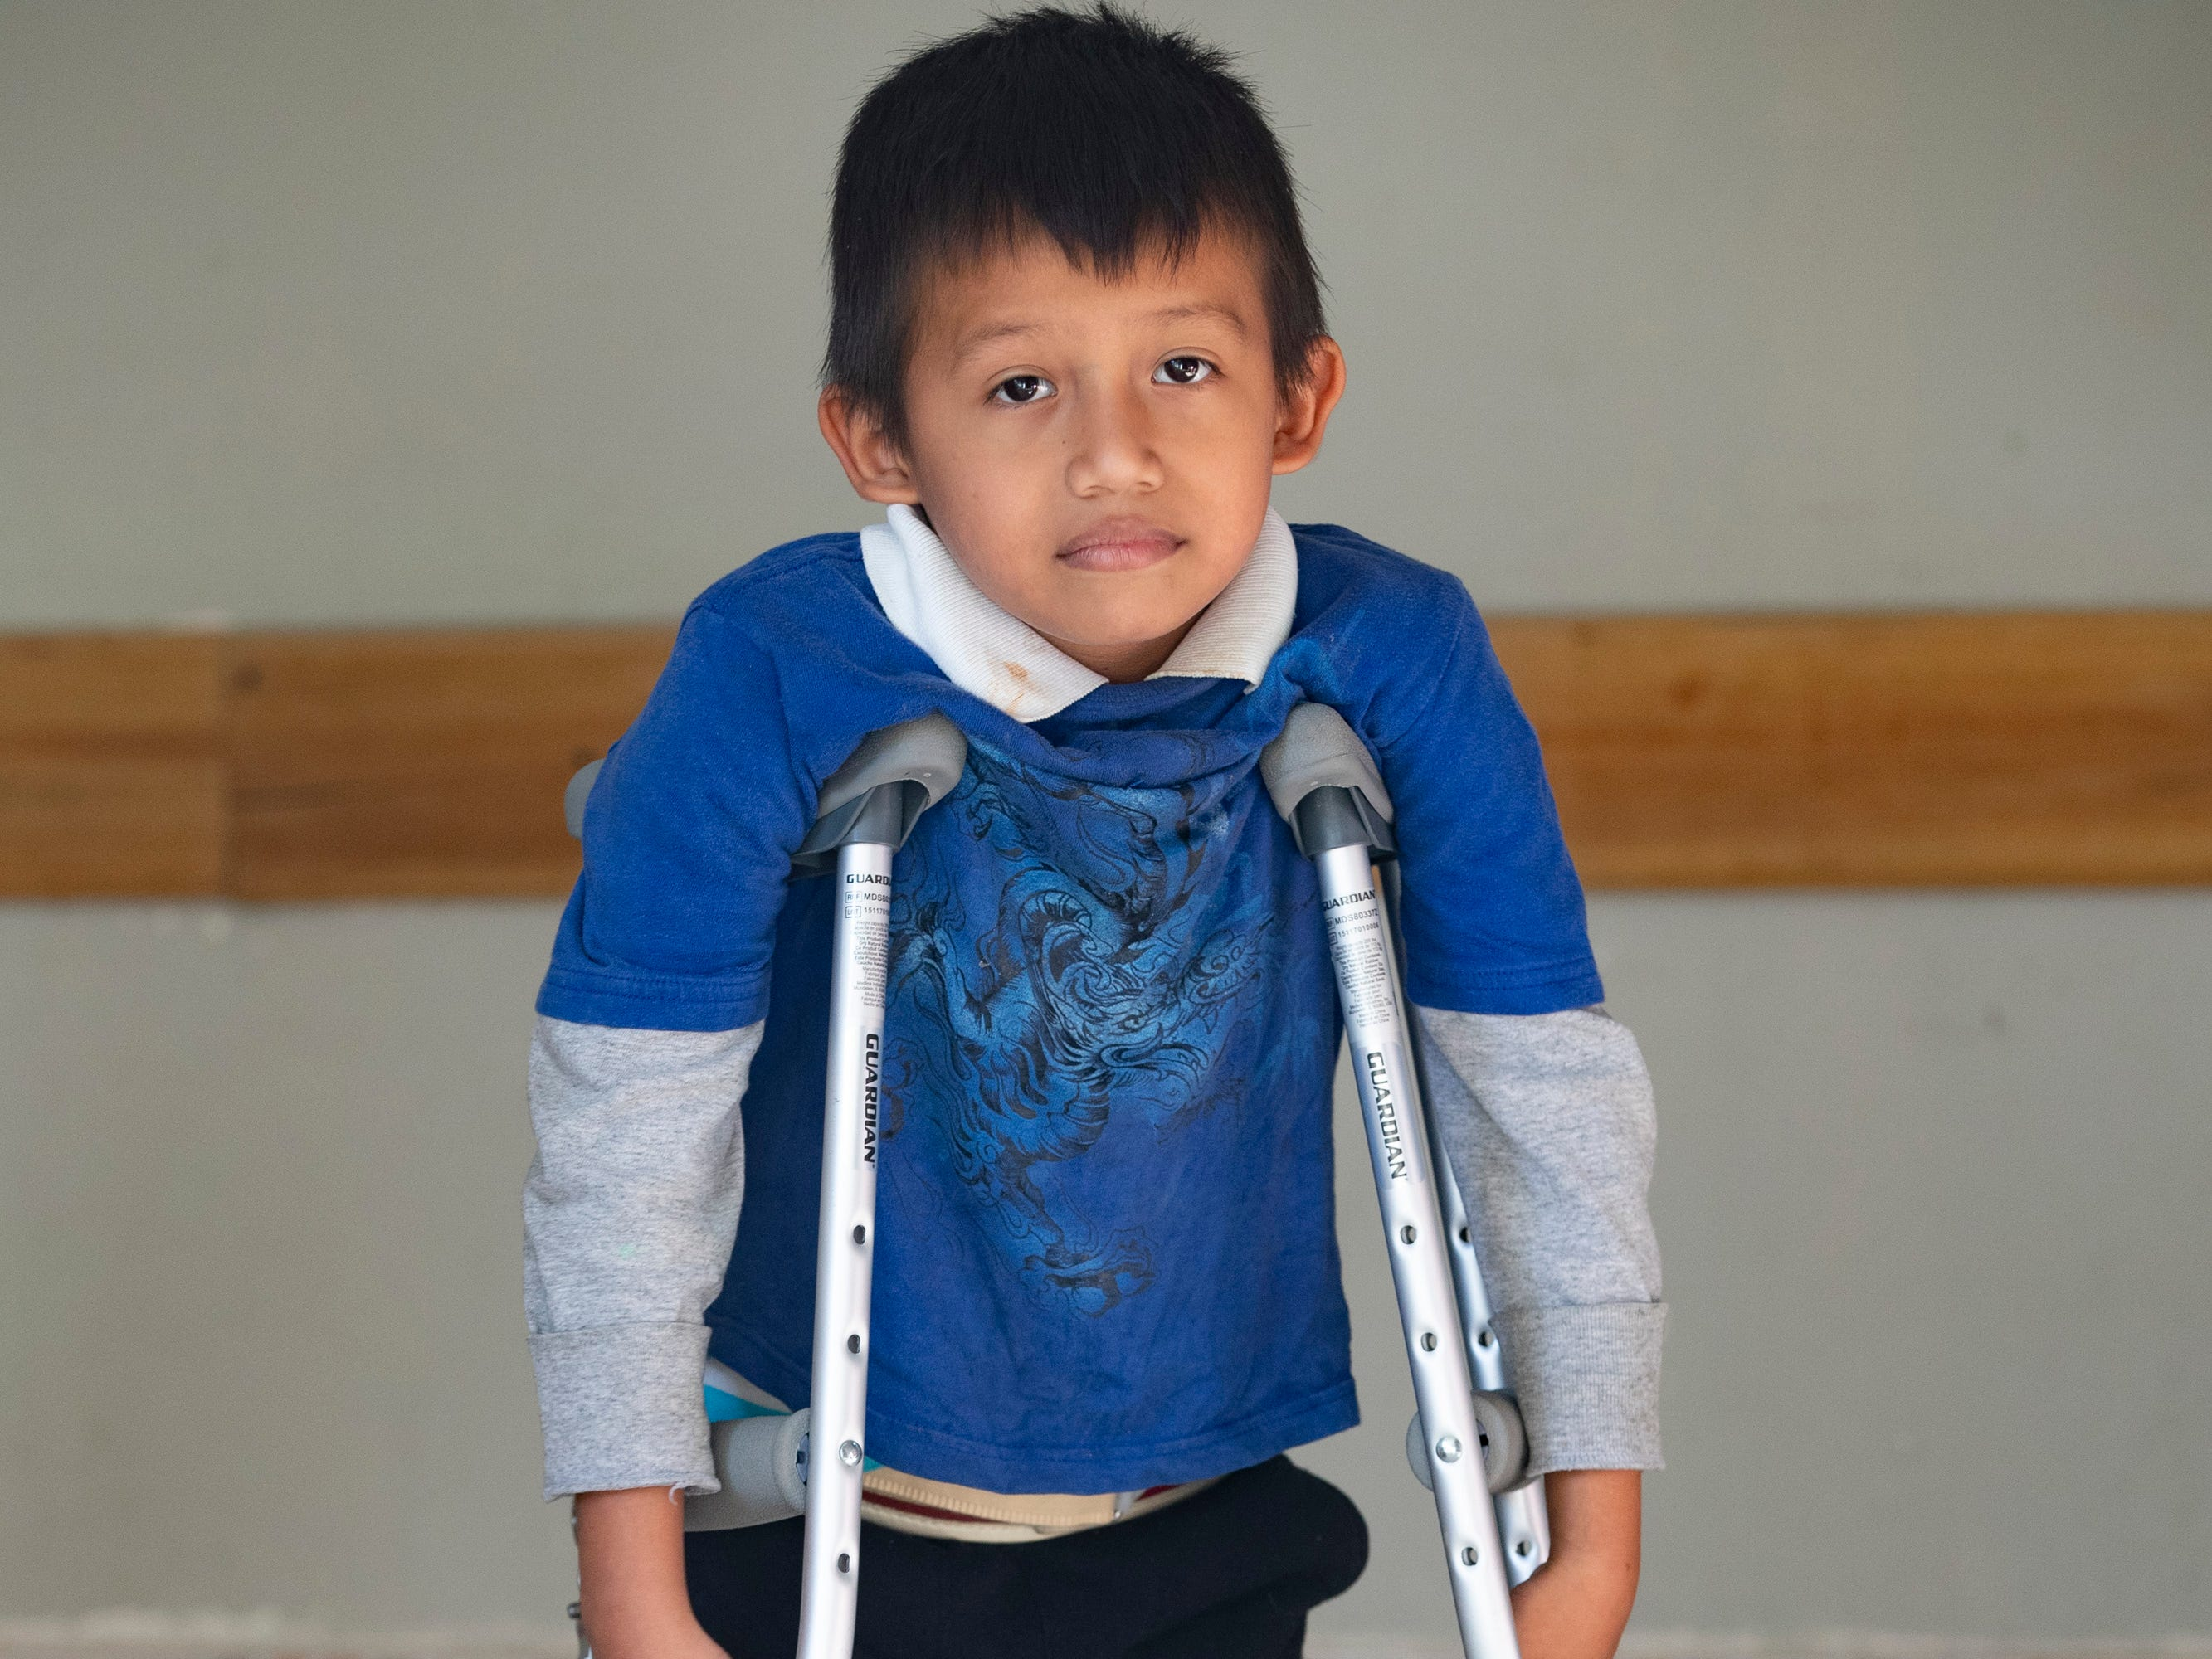 Angel Esthibon Kecinos Pedr, 7, stands with his new crutches at the National Salamá Hospital. Jan. 22, 2019